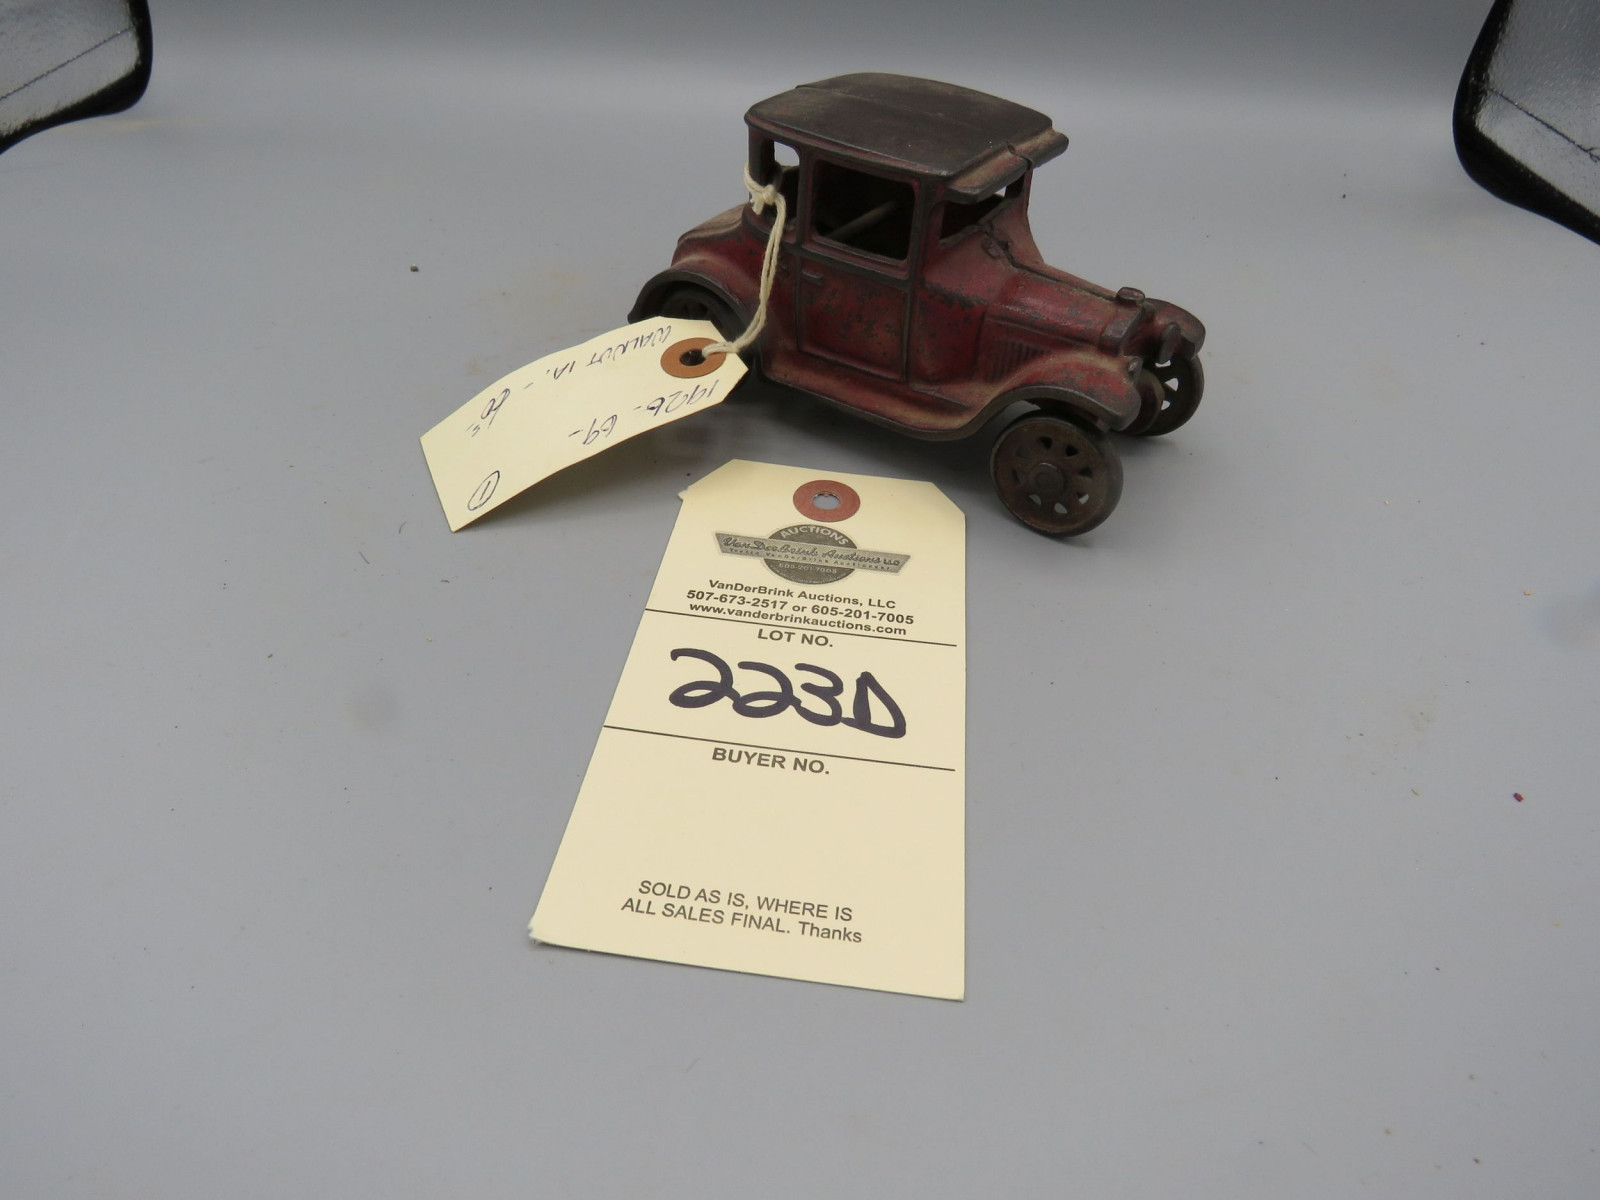 Arcade Cast Iron Coupe @1926 Approx. 6 inches - Image 2